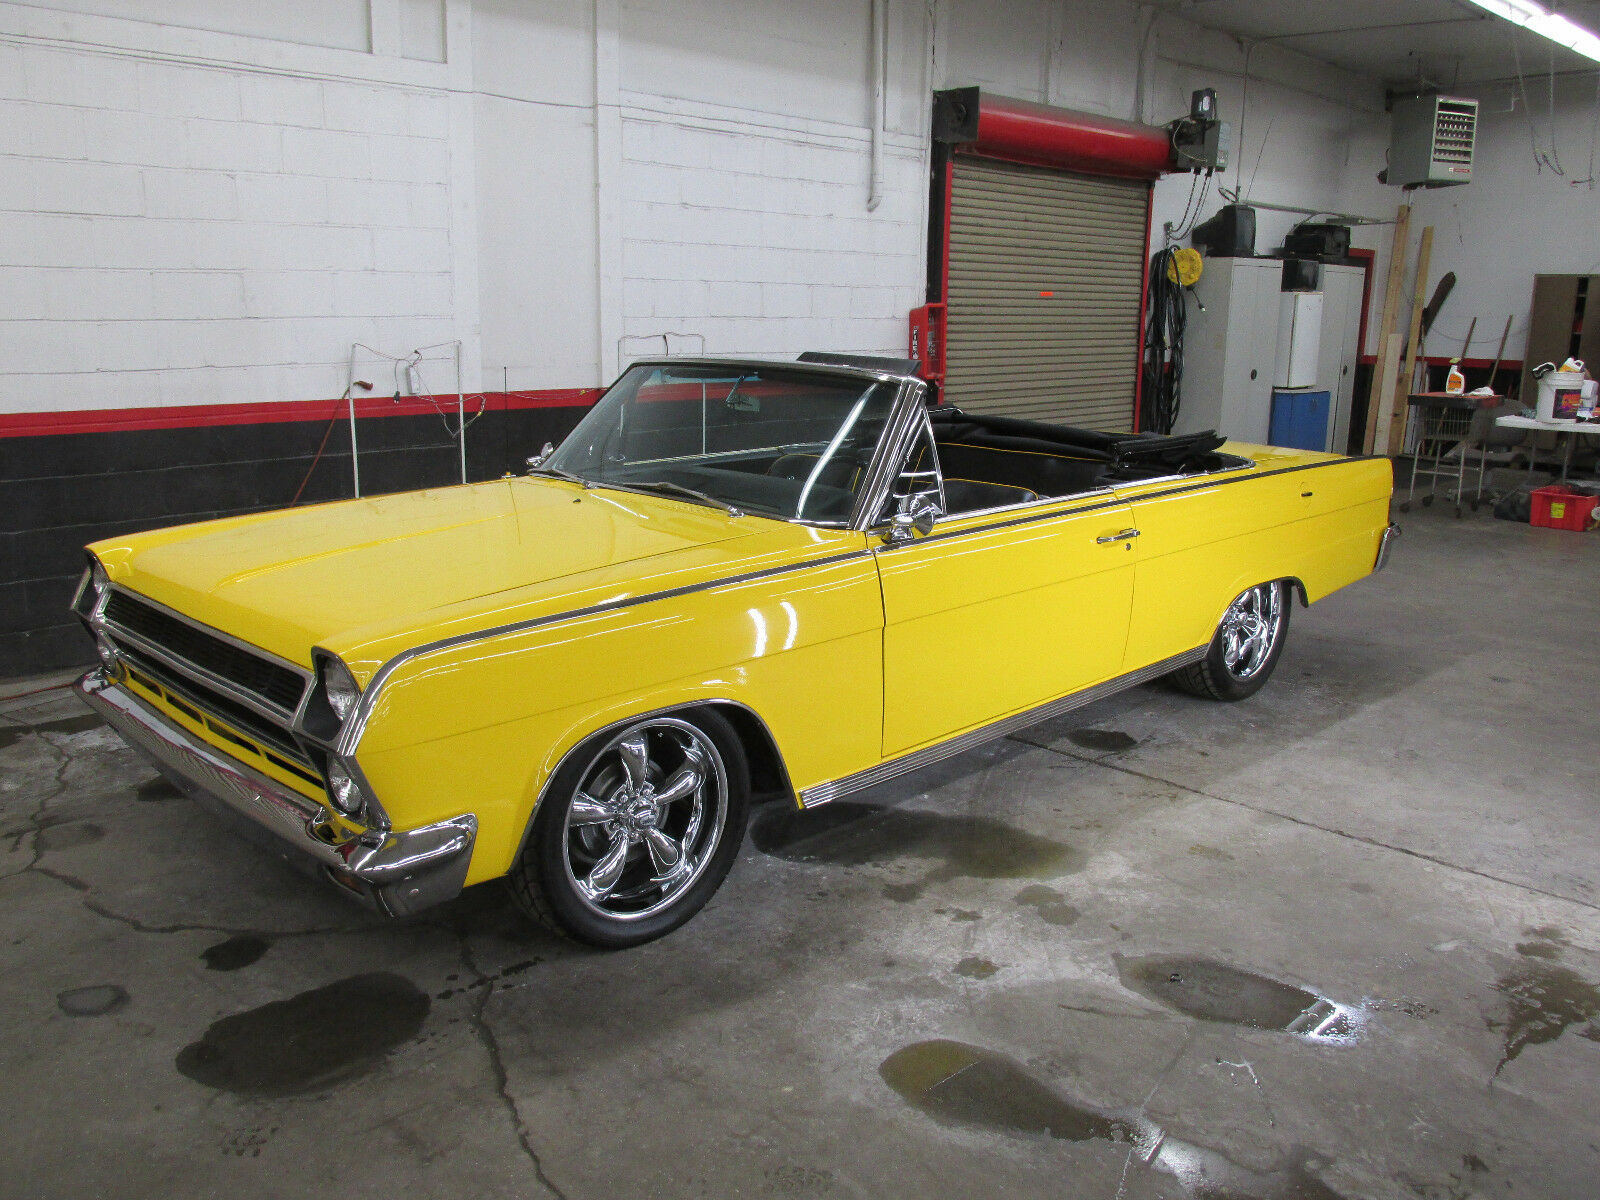 1965 AMC Rambler Convertible Rare AMC Rambler Ambassador Convertible Custom Paint And Interior VERY NICE